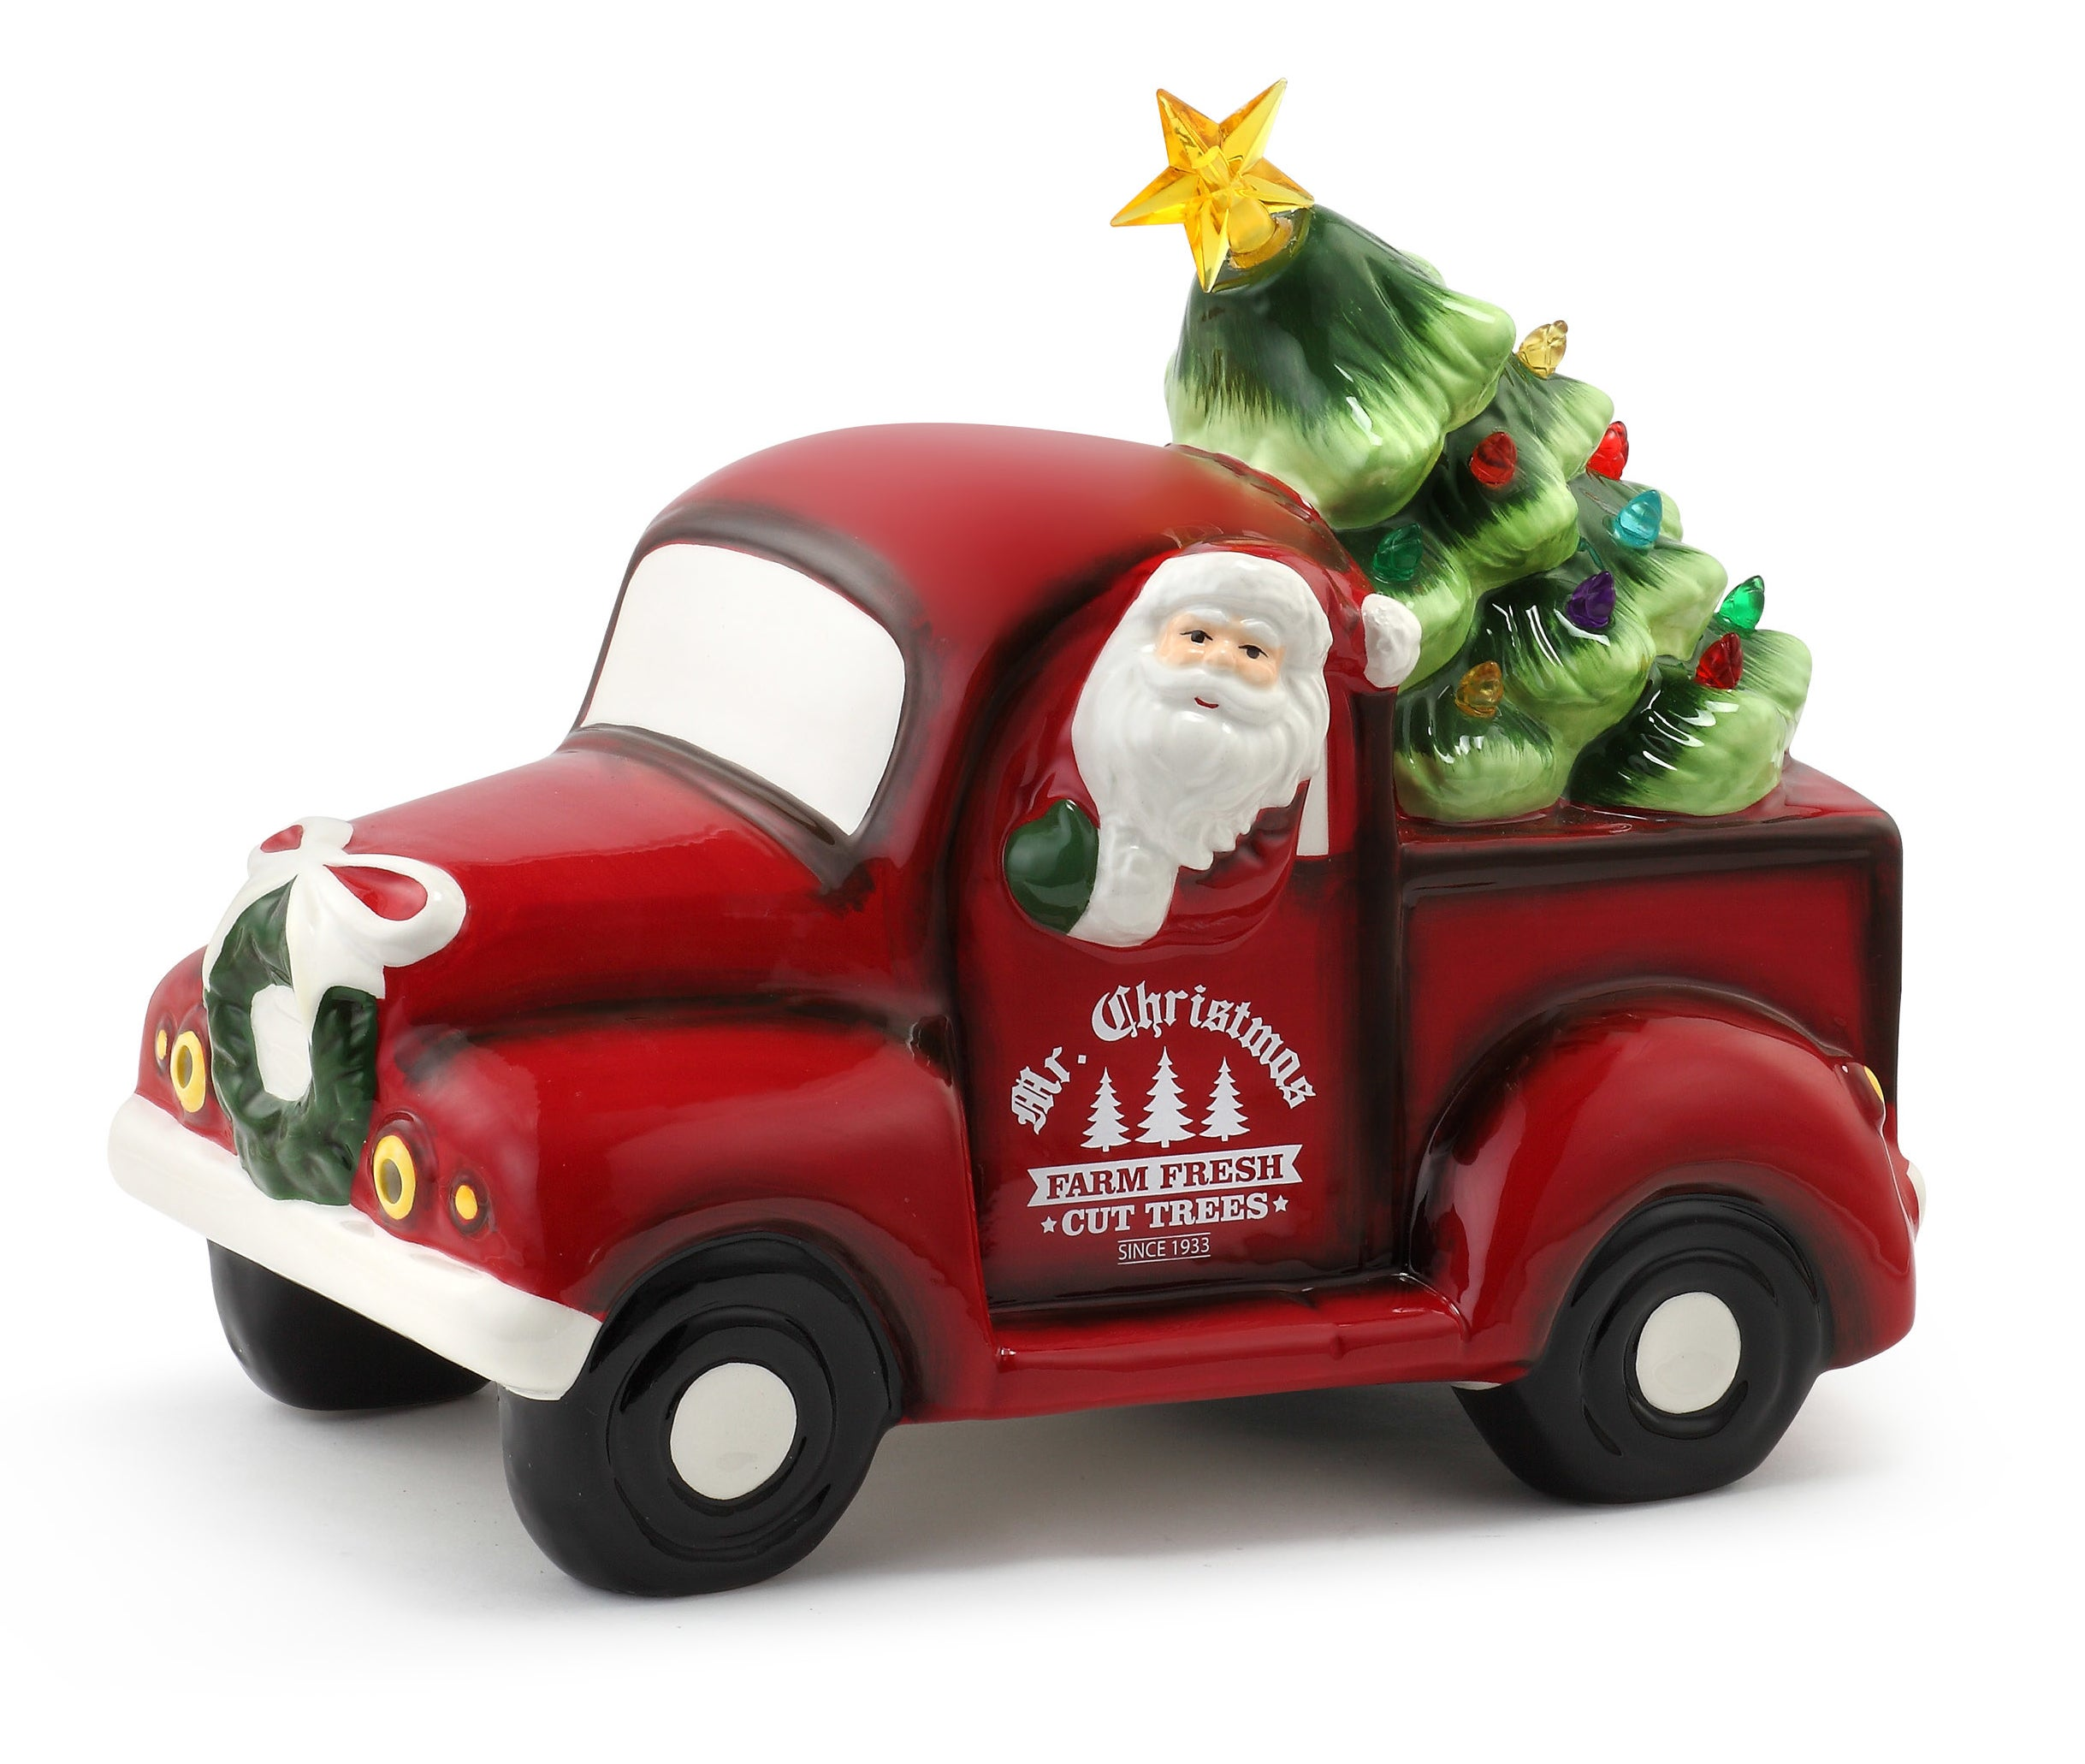 The Santa driving a truck figurine featuring a Christmas tree with LED lights turned on